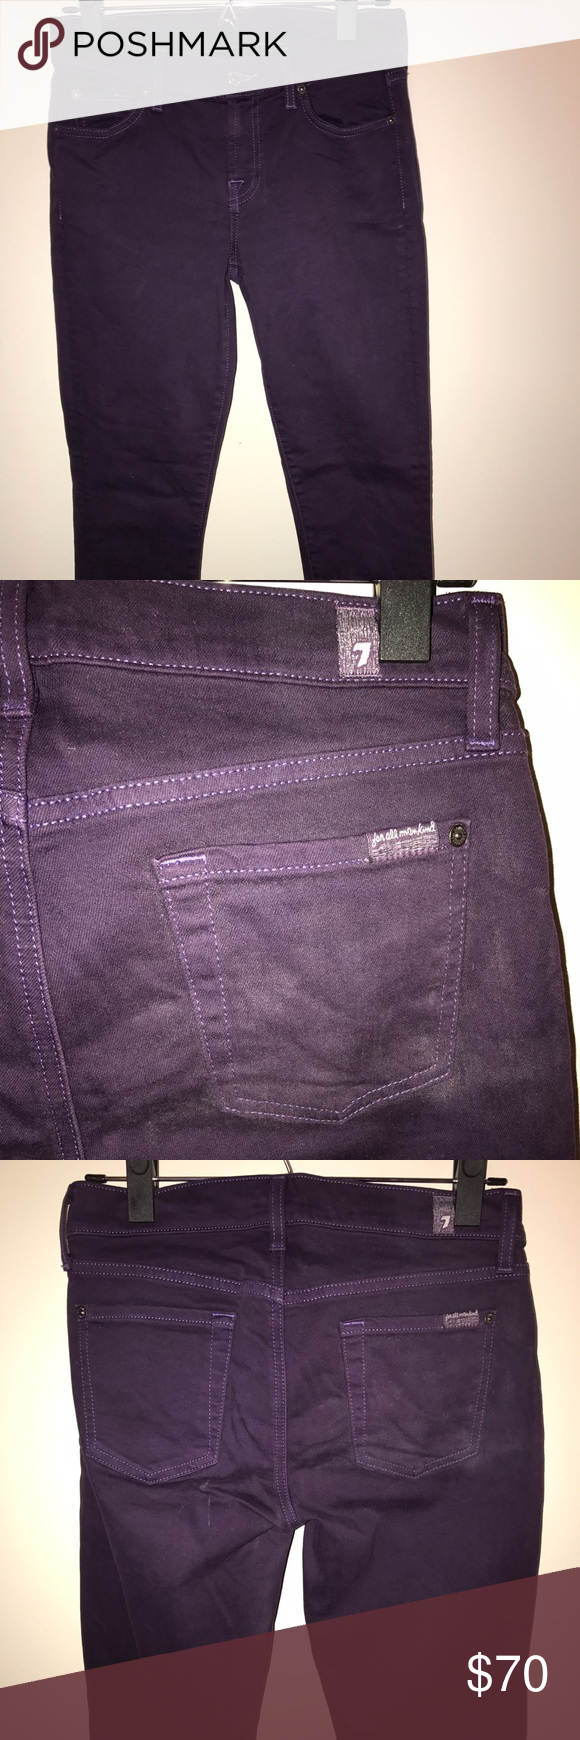 """7 For All Mankind """"The Skinny"""" in dark purple Size 7. Like new, only worn once. 7 For All Mankind Jeans Skinny"""